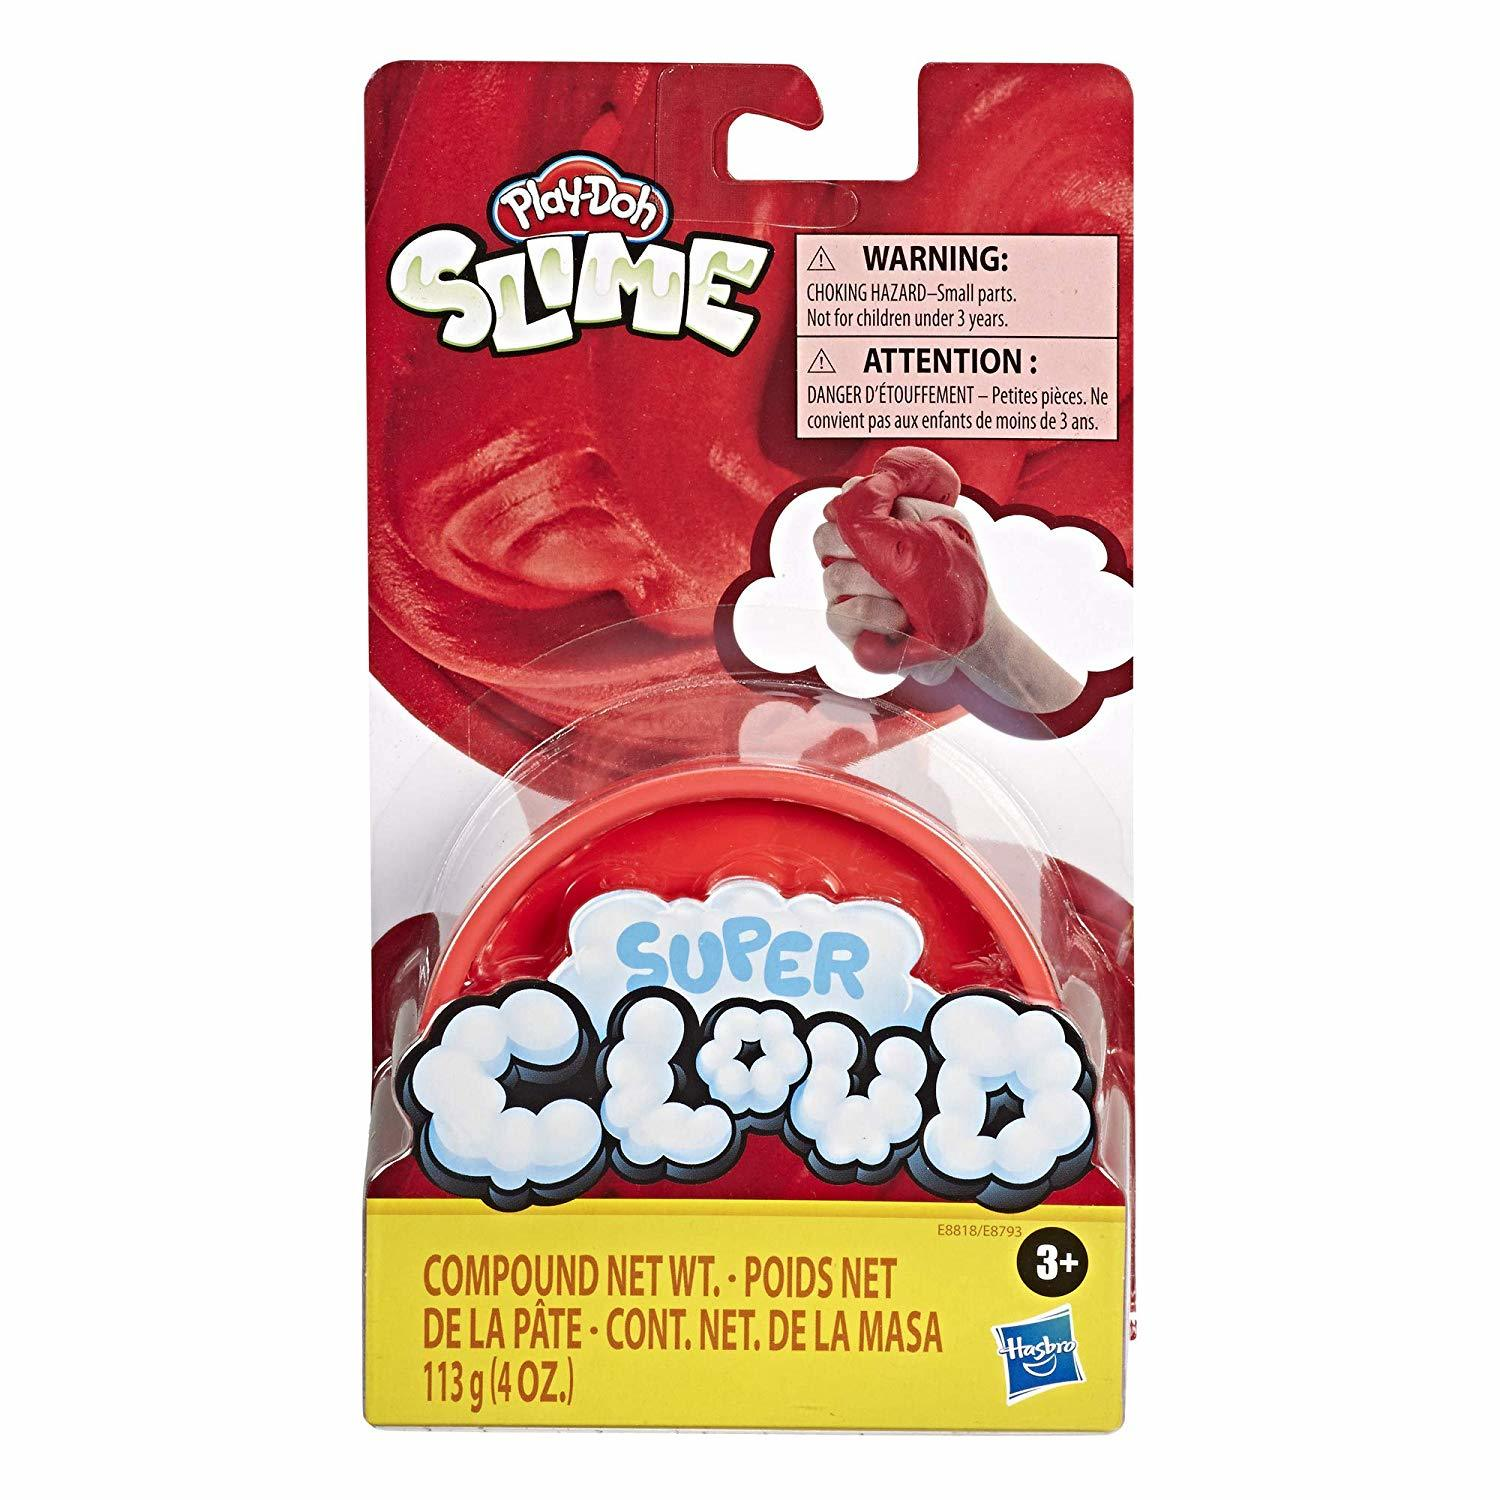 Play-Doh Super Cloud Slime - Red (Single Can) image